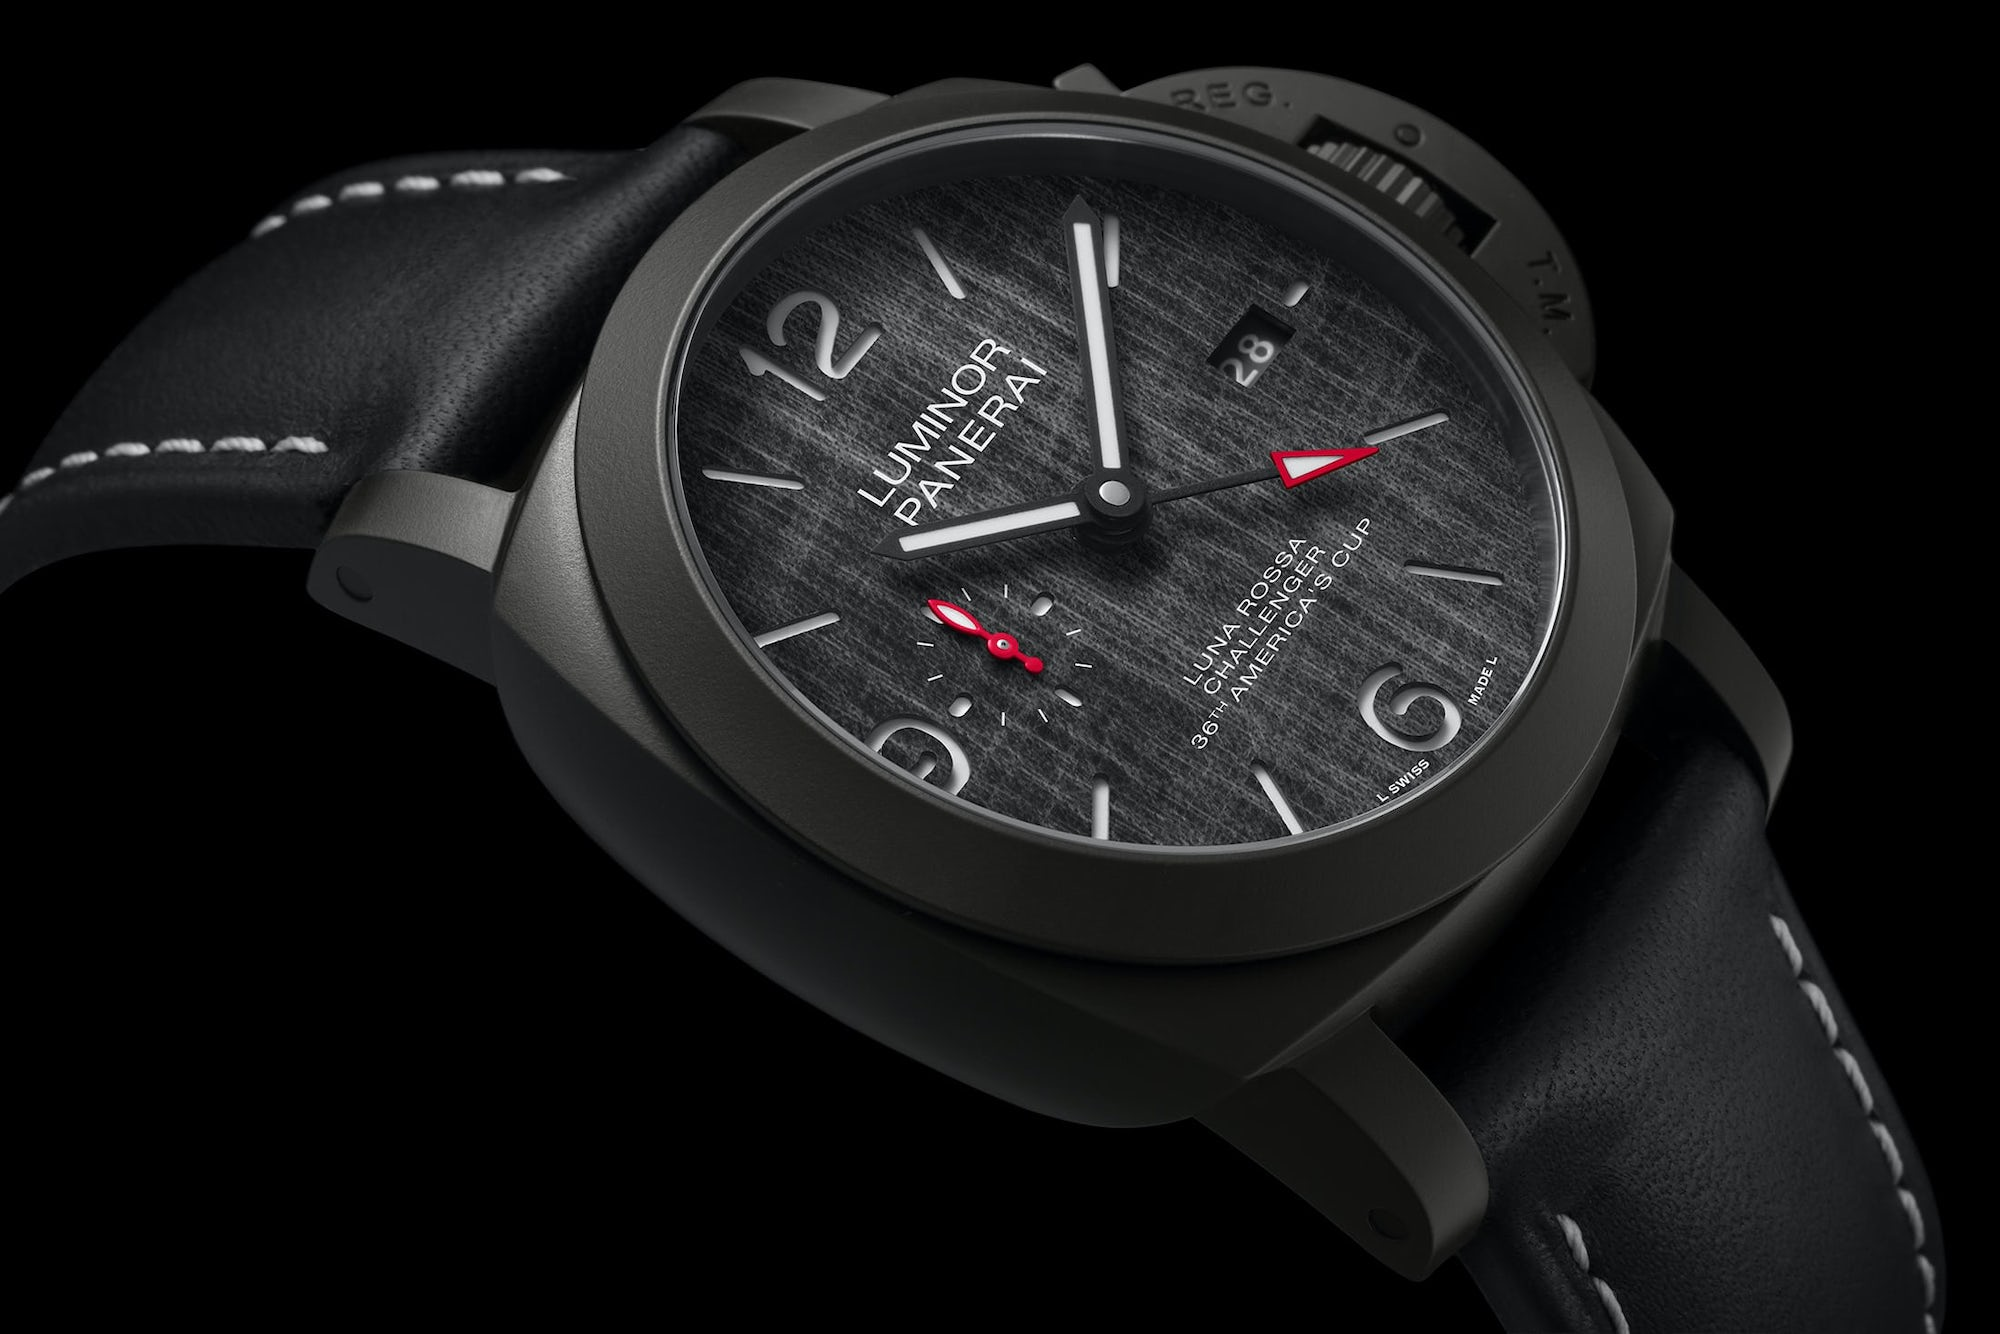 Panerai Luminor Luna Rossa GMT 44mm Pam 1036 detalle